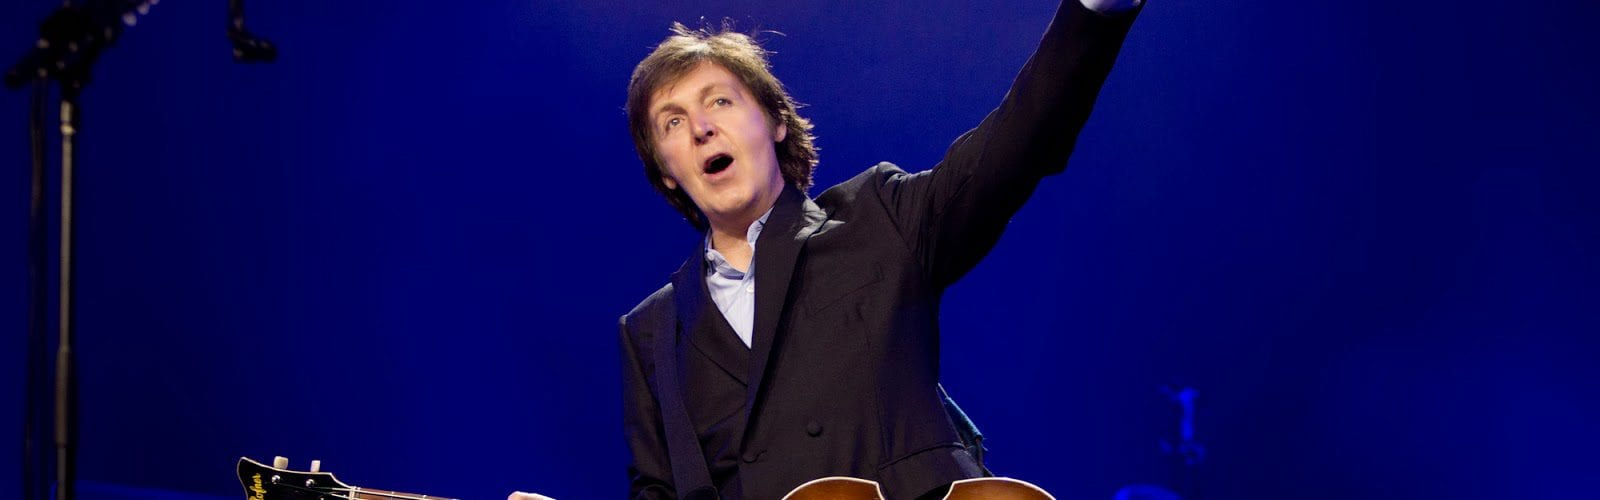 Paul McCartney's 'Freshen Up Tour' Tops Mid-Week Best-Sellers